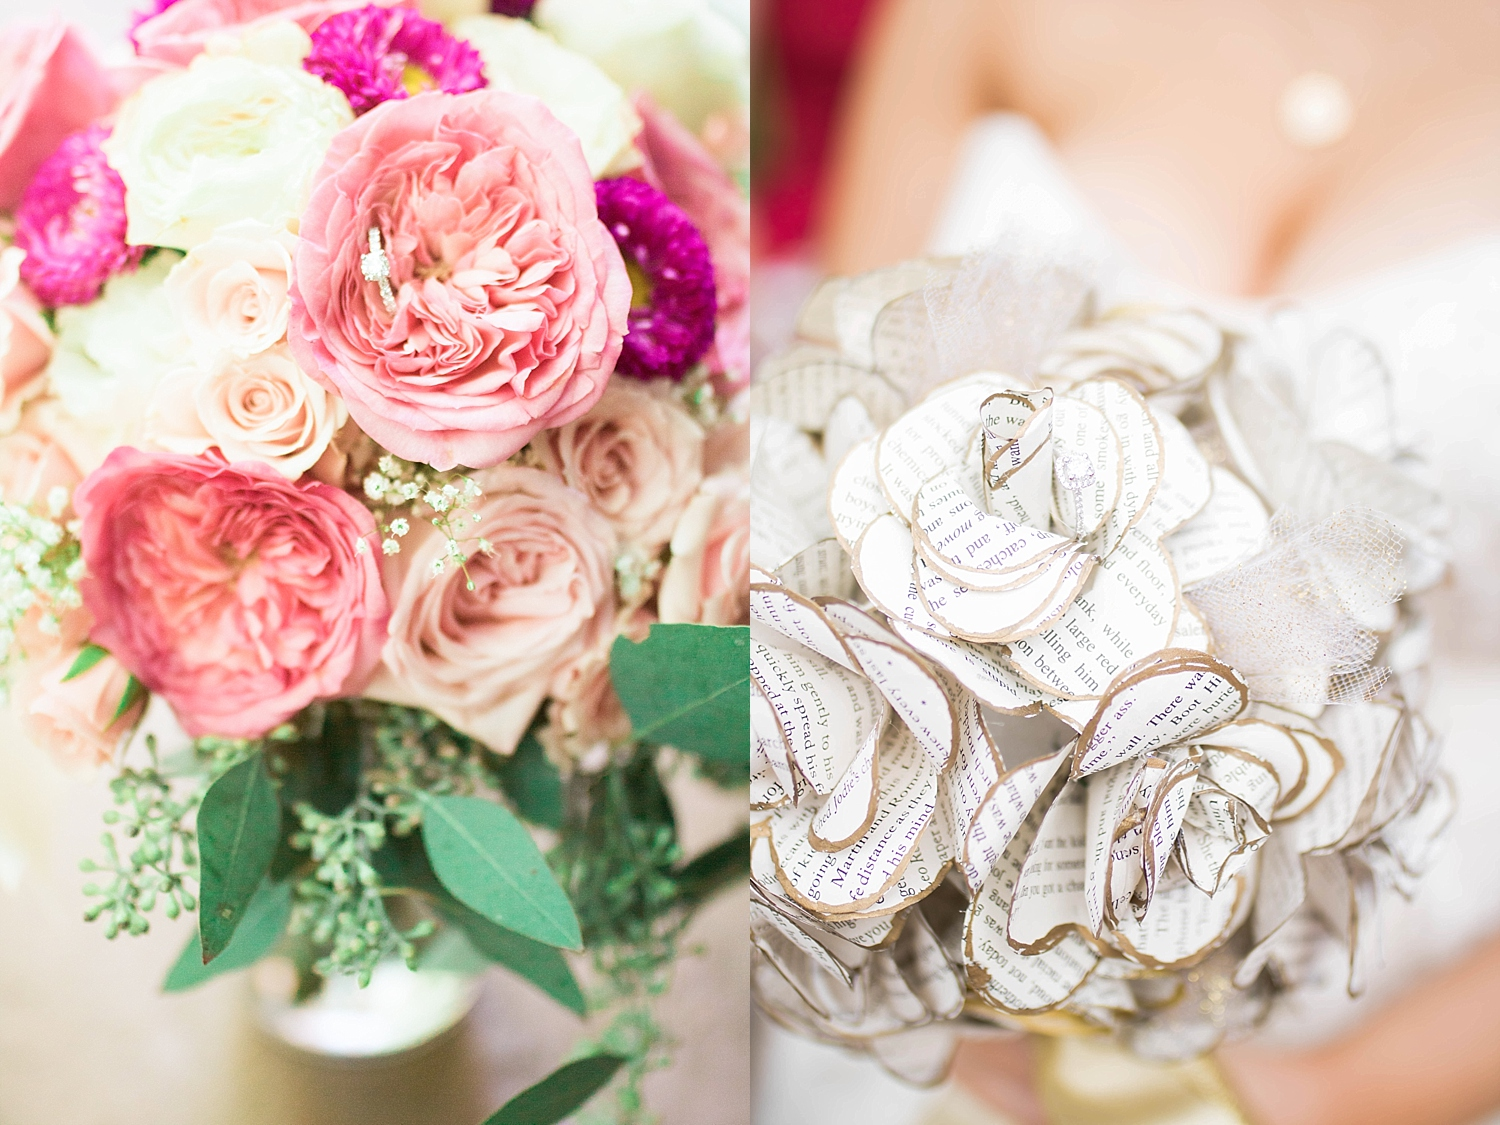 Pink and purple roses and wild flowers with babies breath, and flowers made from book pages.